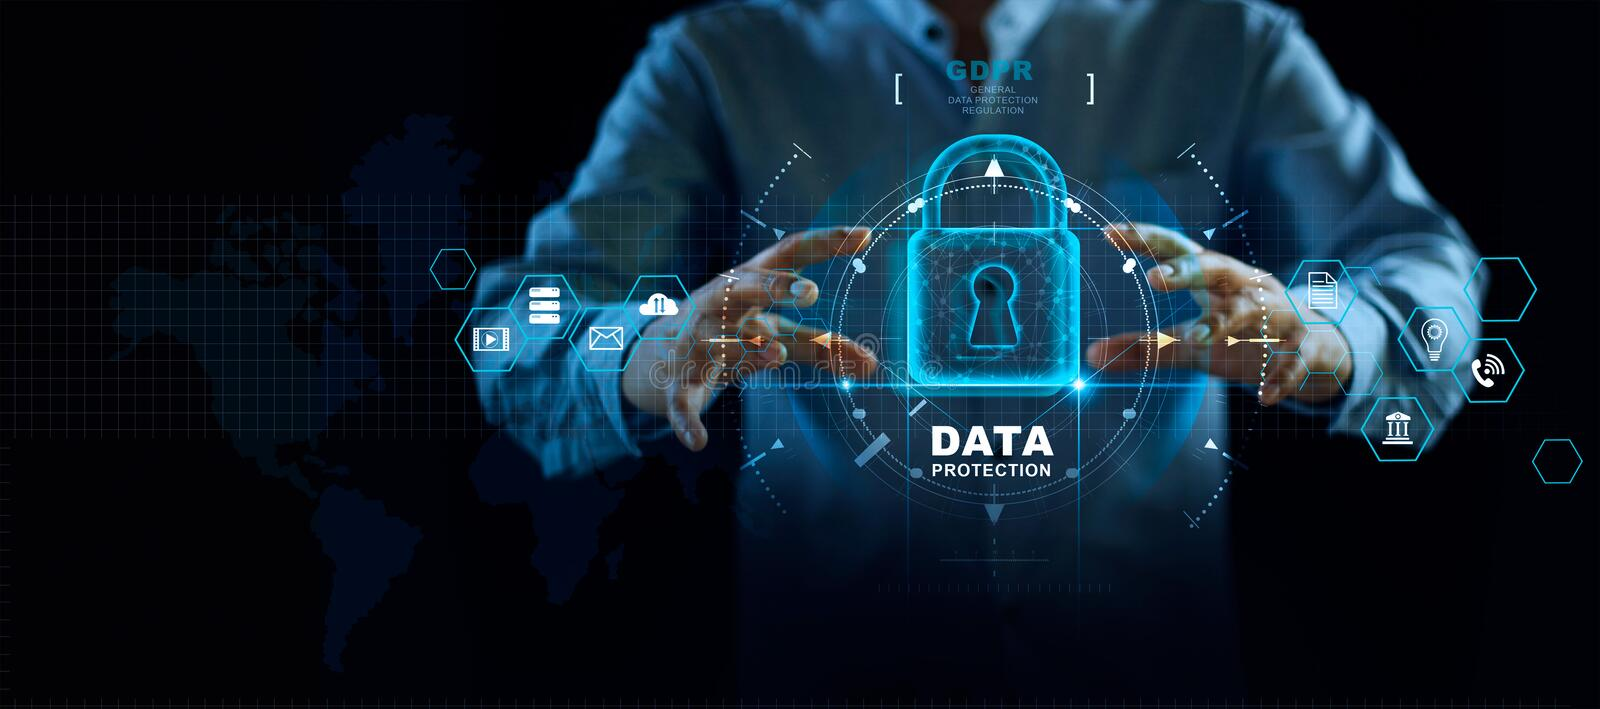 Data protection privacy concept. GDPR. EU. Cyber security network. Business man protecting data personal information stock photo